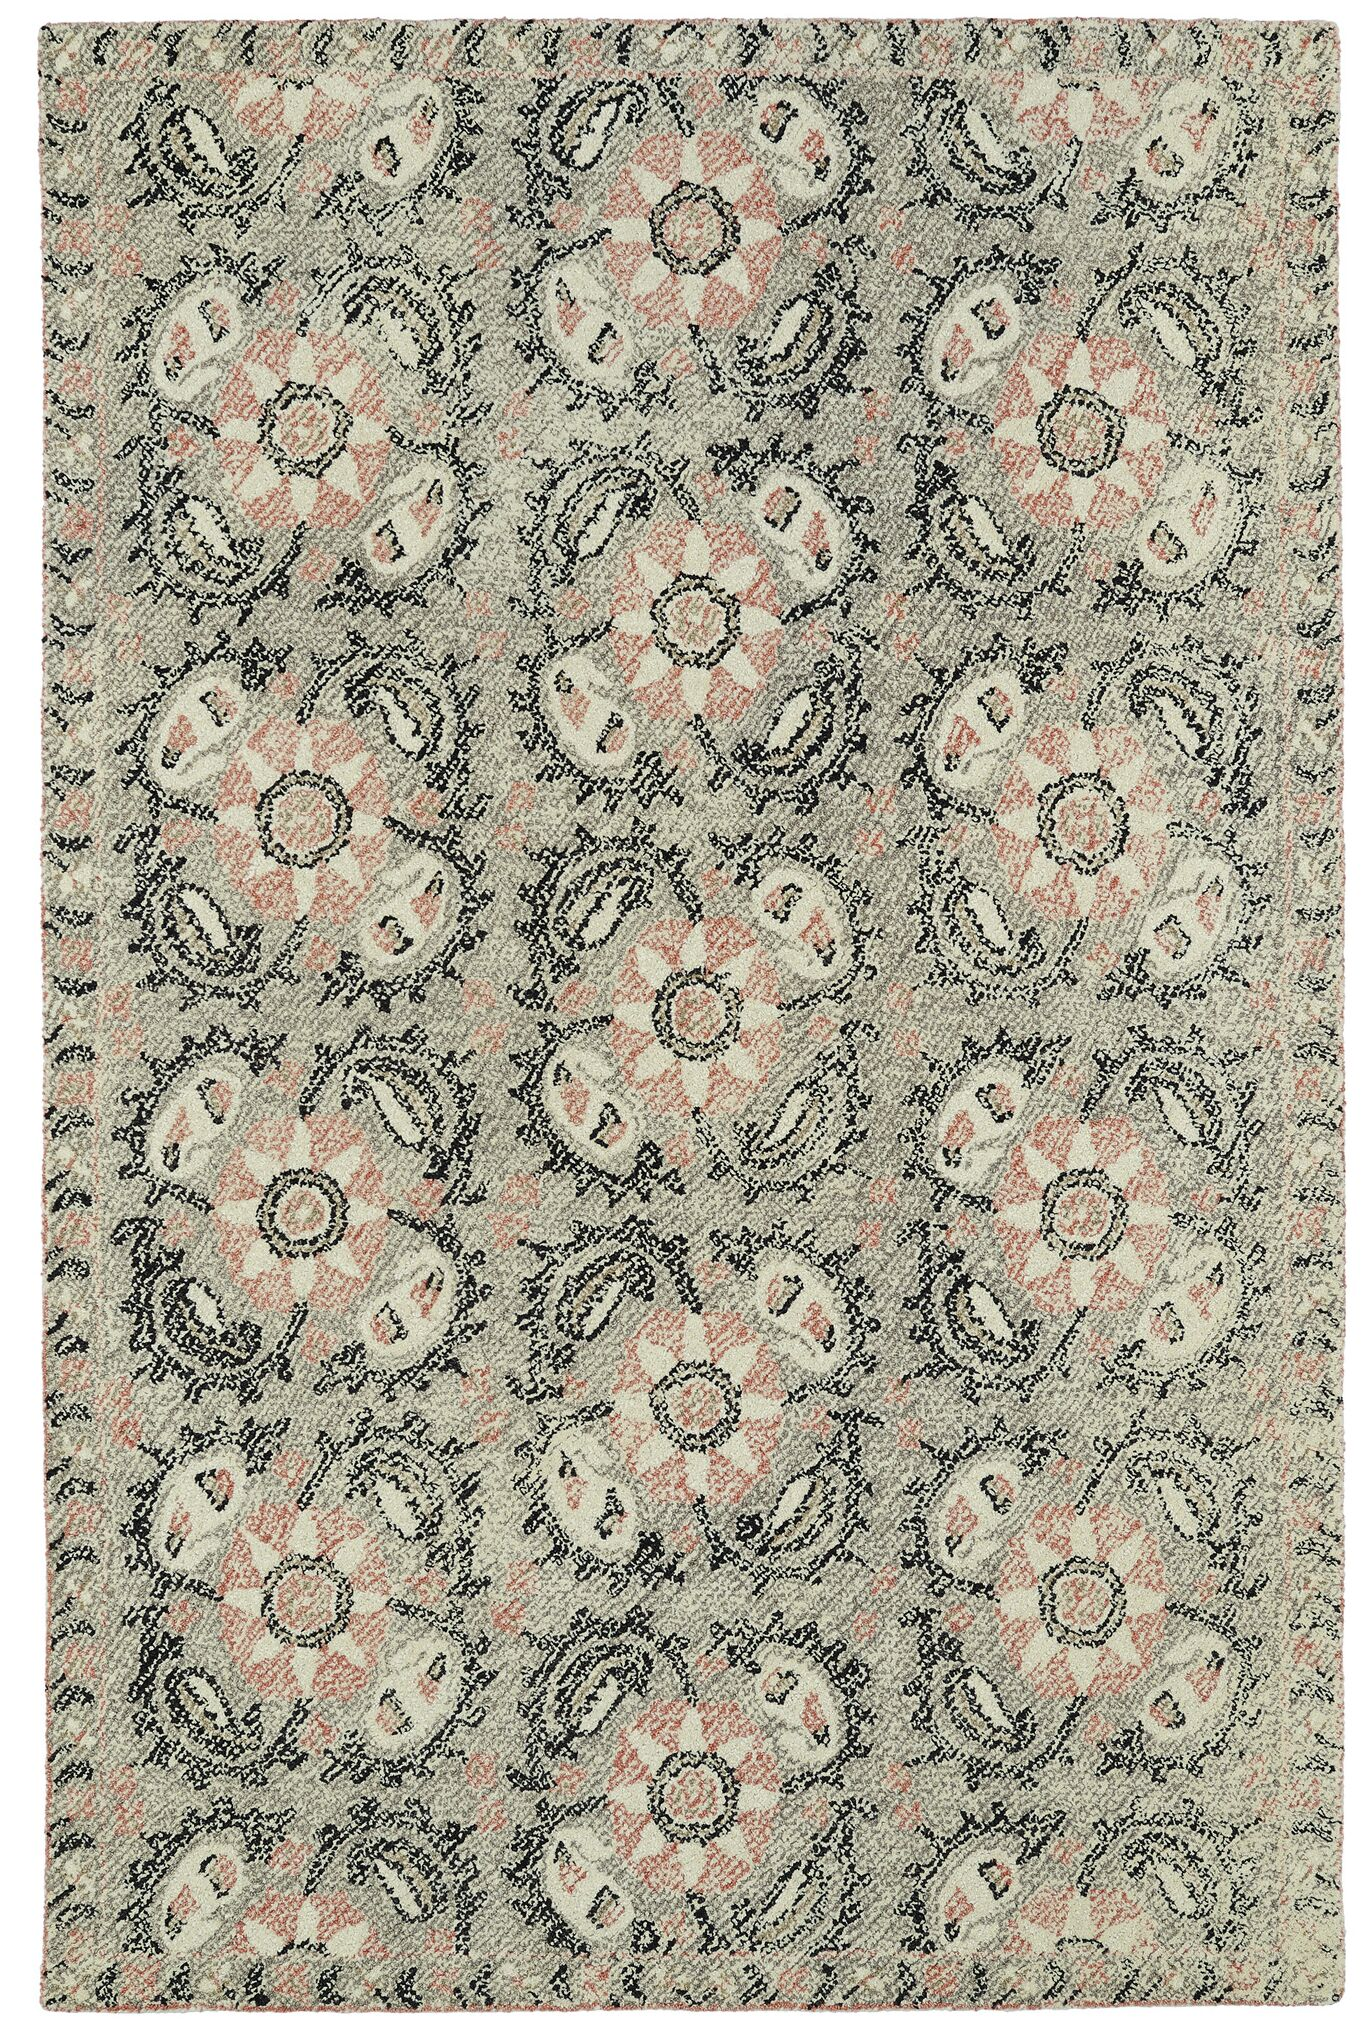 Valenzano Hand-Tufted Gray/Black Area Rug Rug Size: Rectangle 3'6